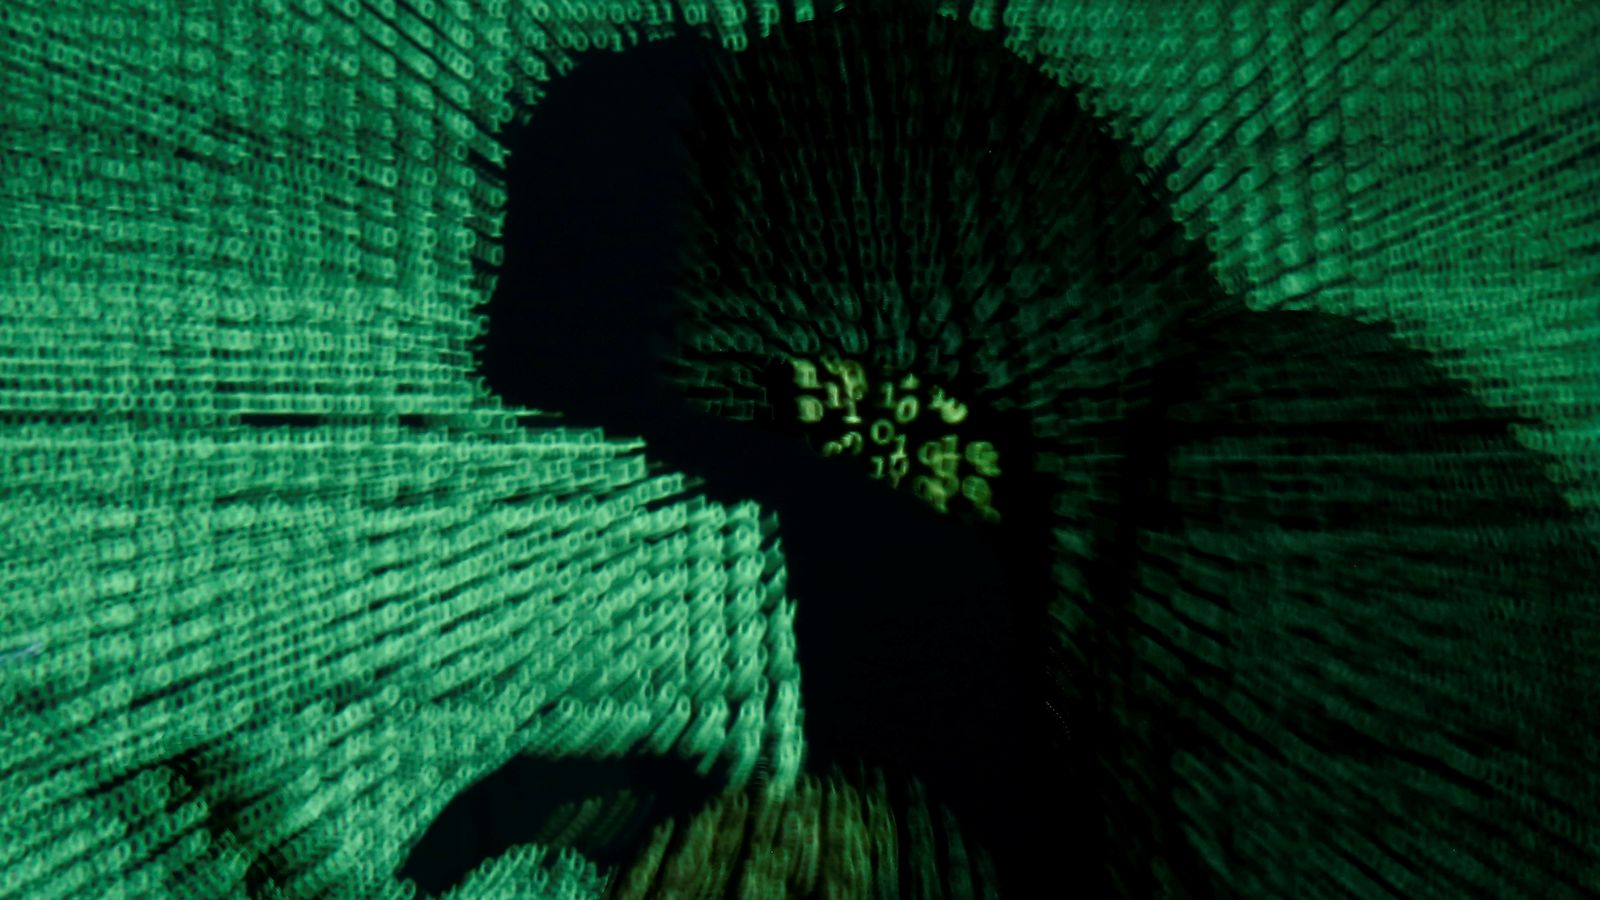 MalwareTech pleads not guilty to Kronos charges